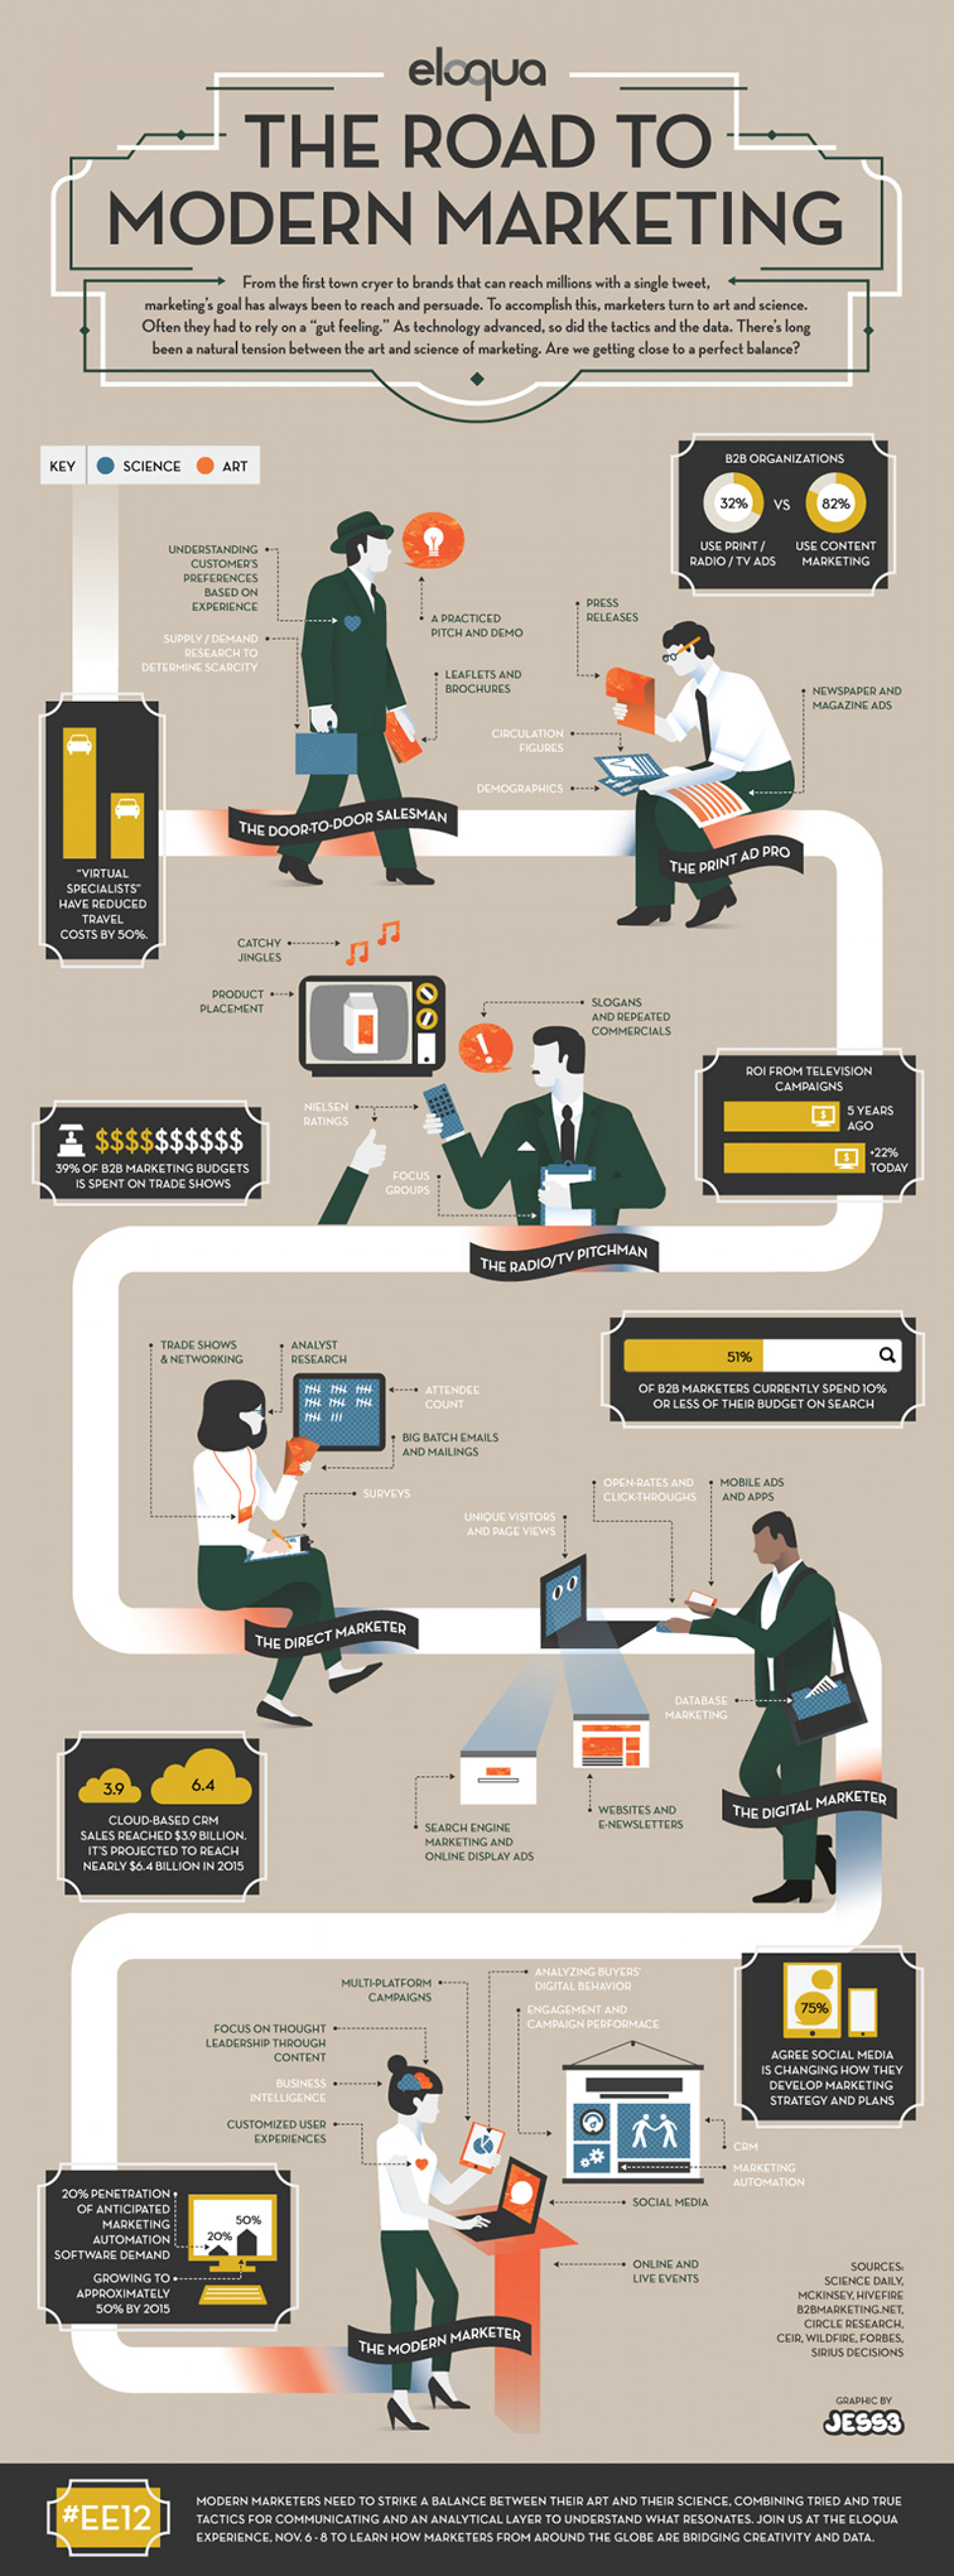 The Road to Modern Marketing Infographic